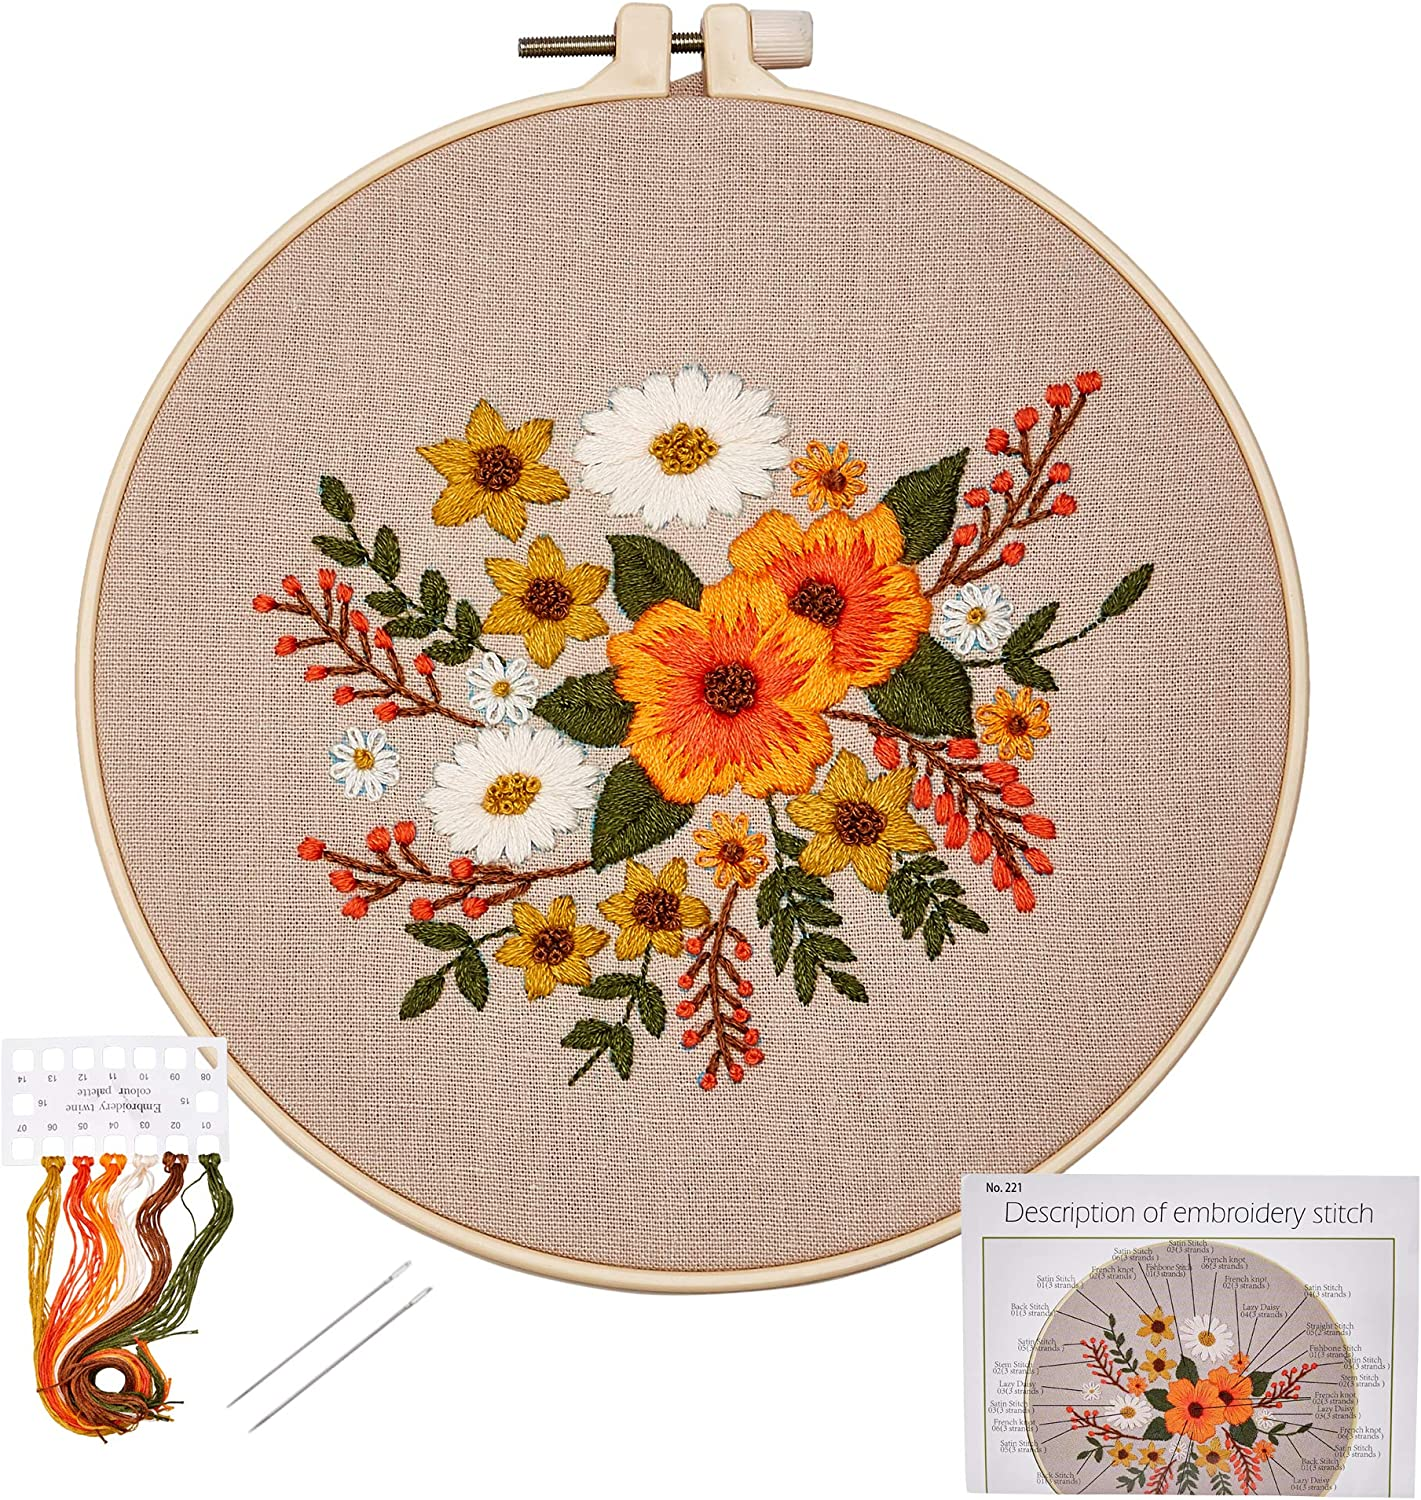 Embroidery Starter Kit with Pattern, Embroidery Kit for Beginners, Cross Stitch Needlepoint Craft Kits, Floral Pattern, Includes Embroidery Hoops, Color Threads, Embroidery Cloth, and Needles